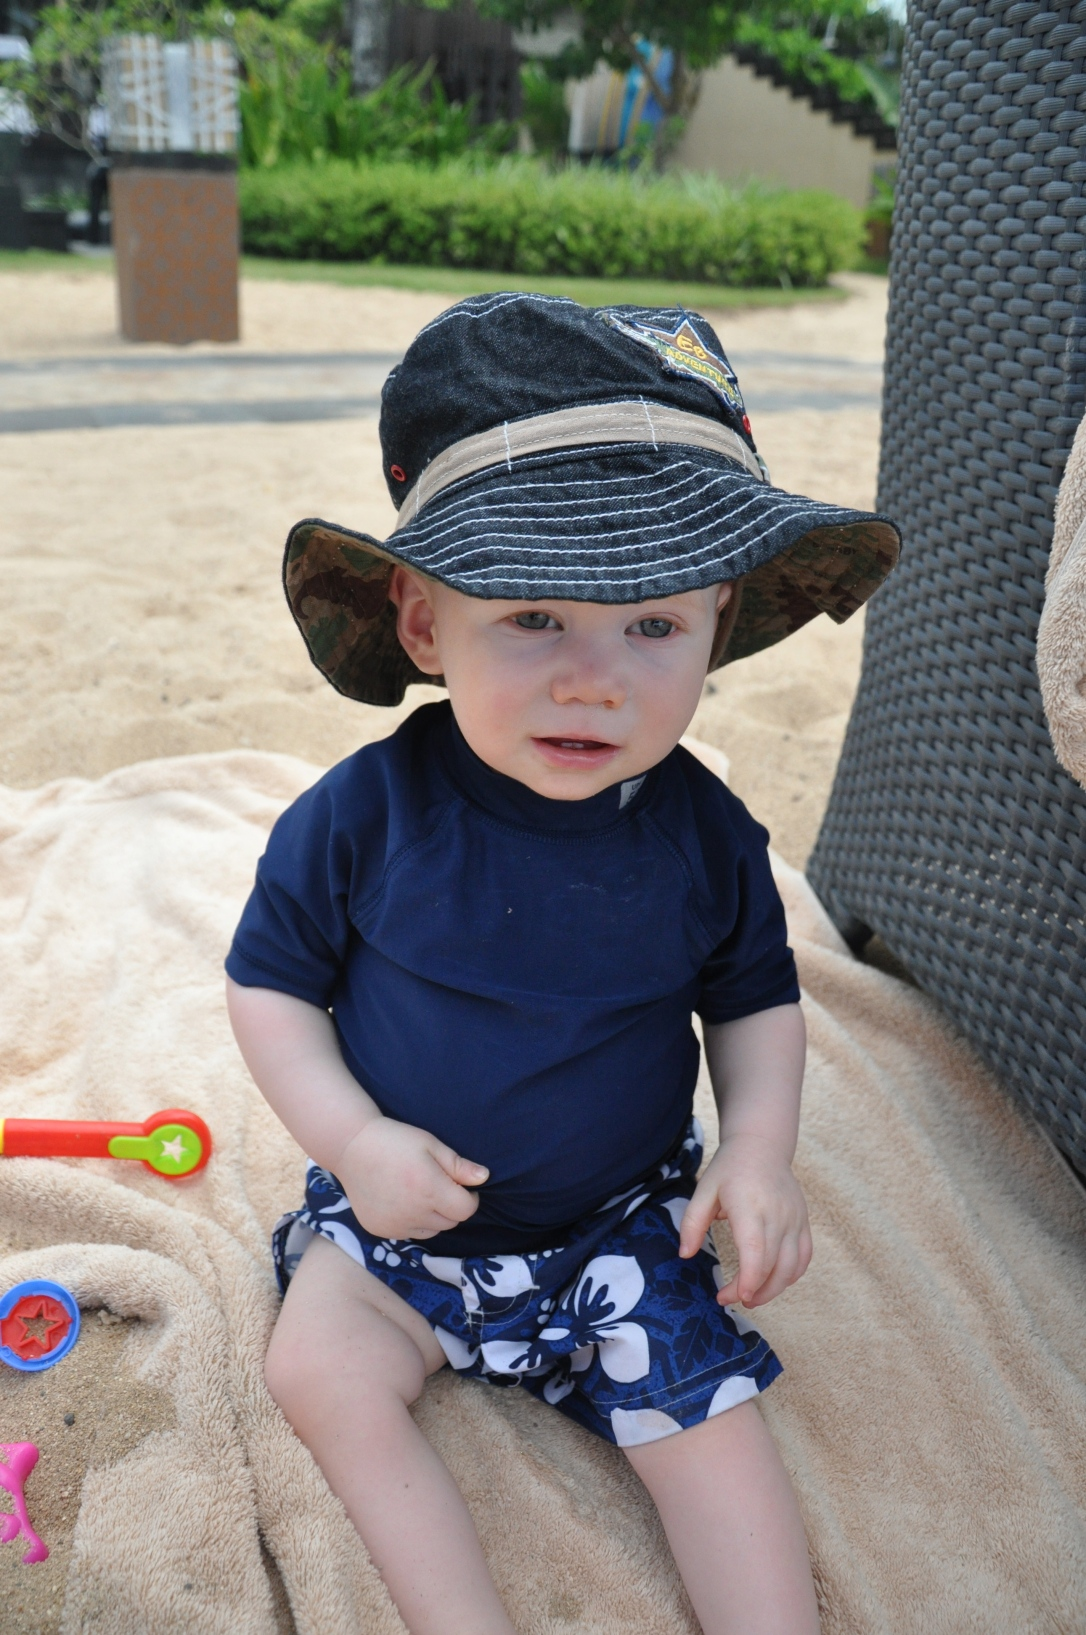 Better learn to love wearing a hat in the sun.